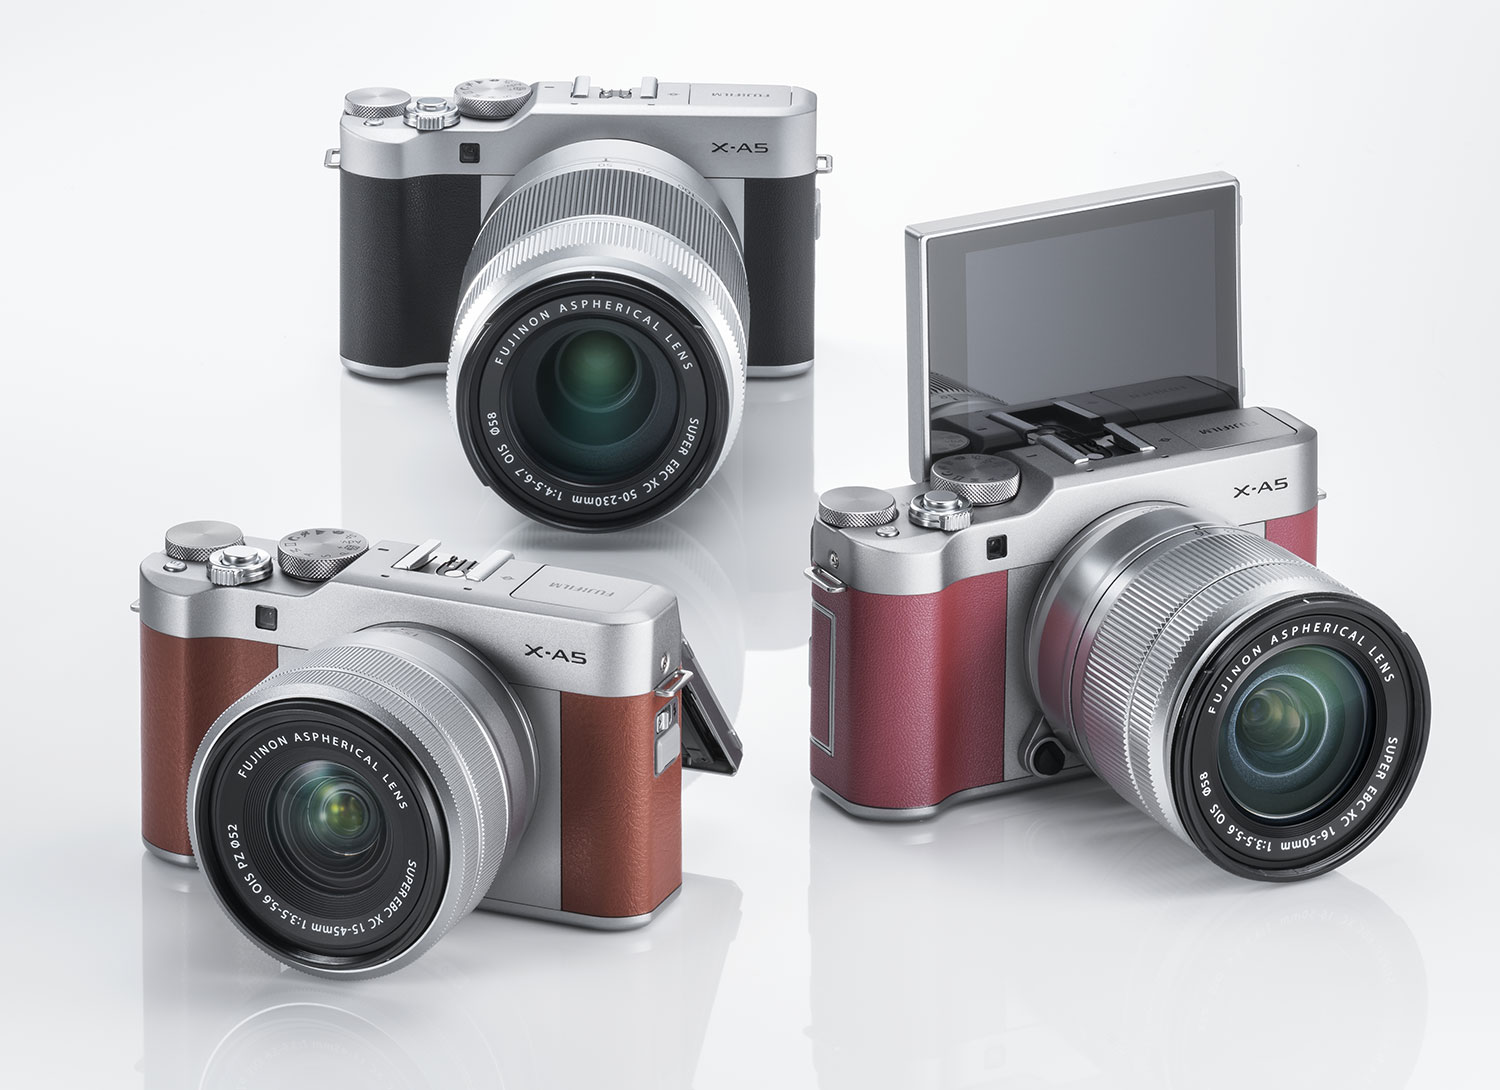 NEWS: Just announced! The FUJIFILM X-A5